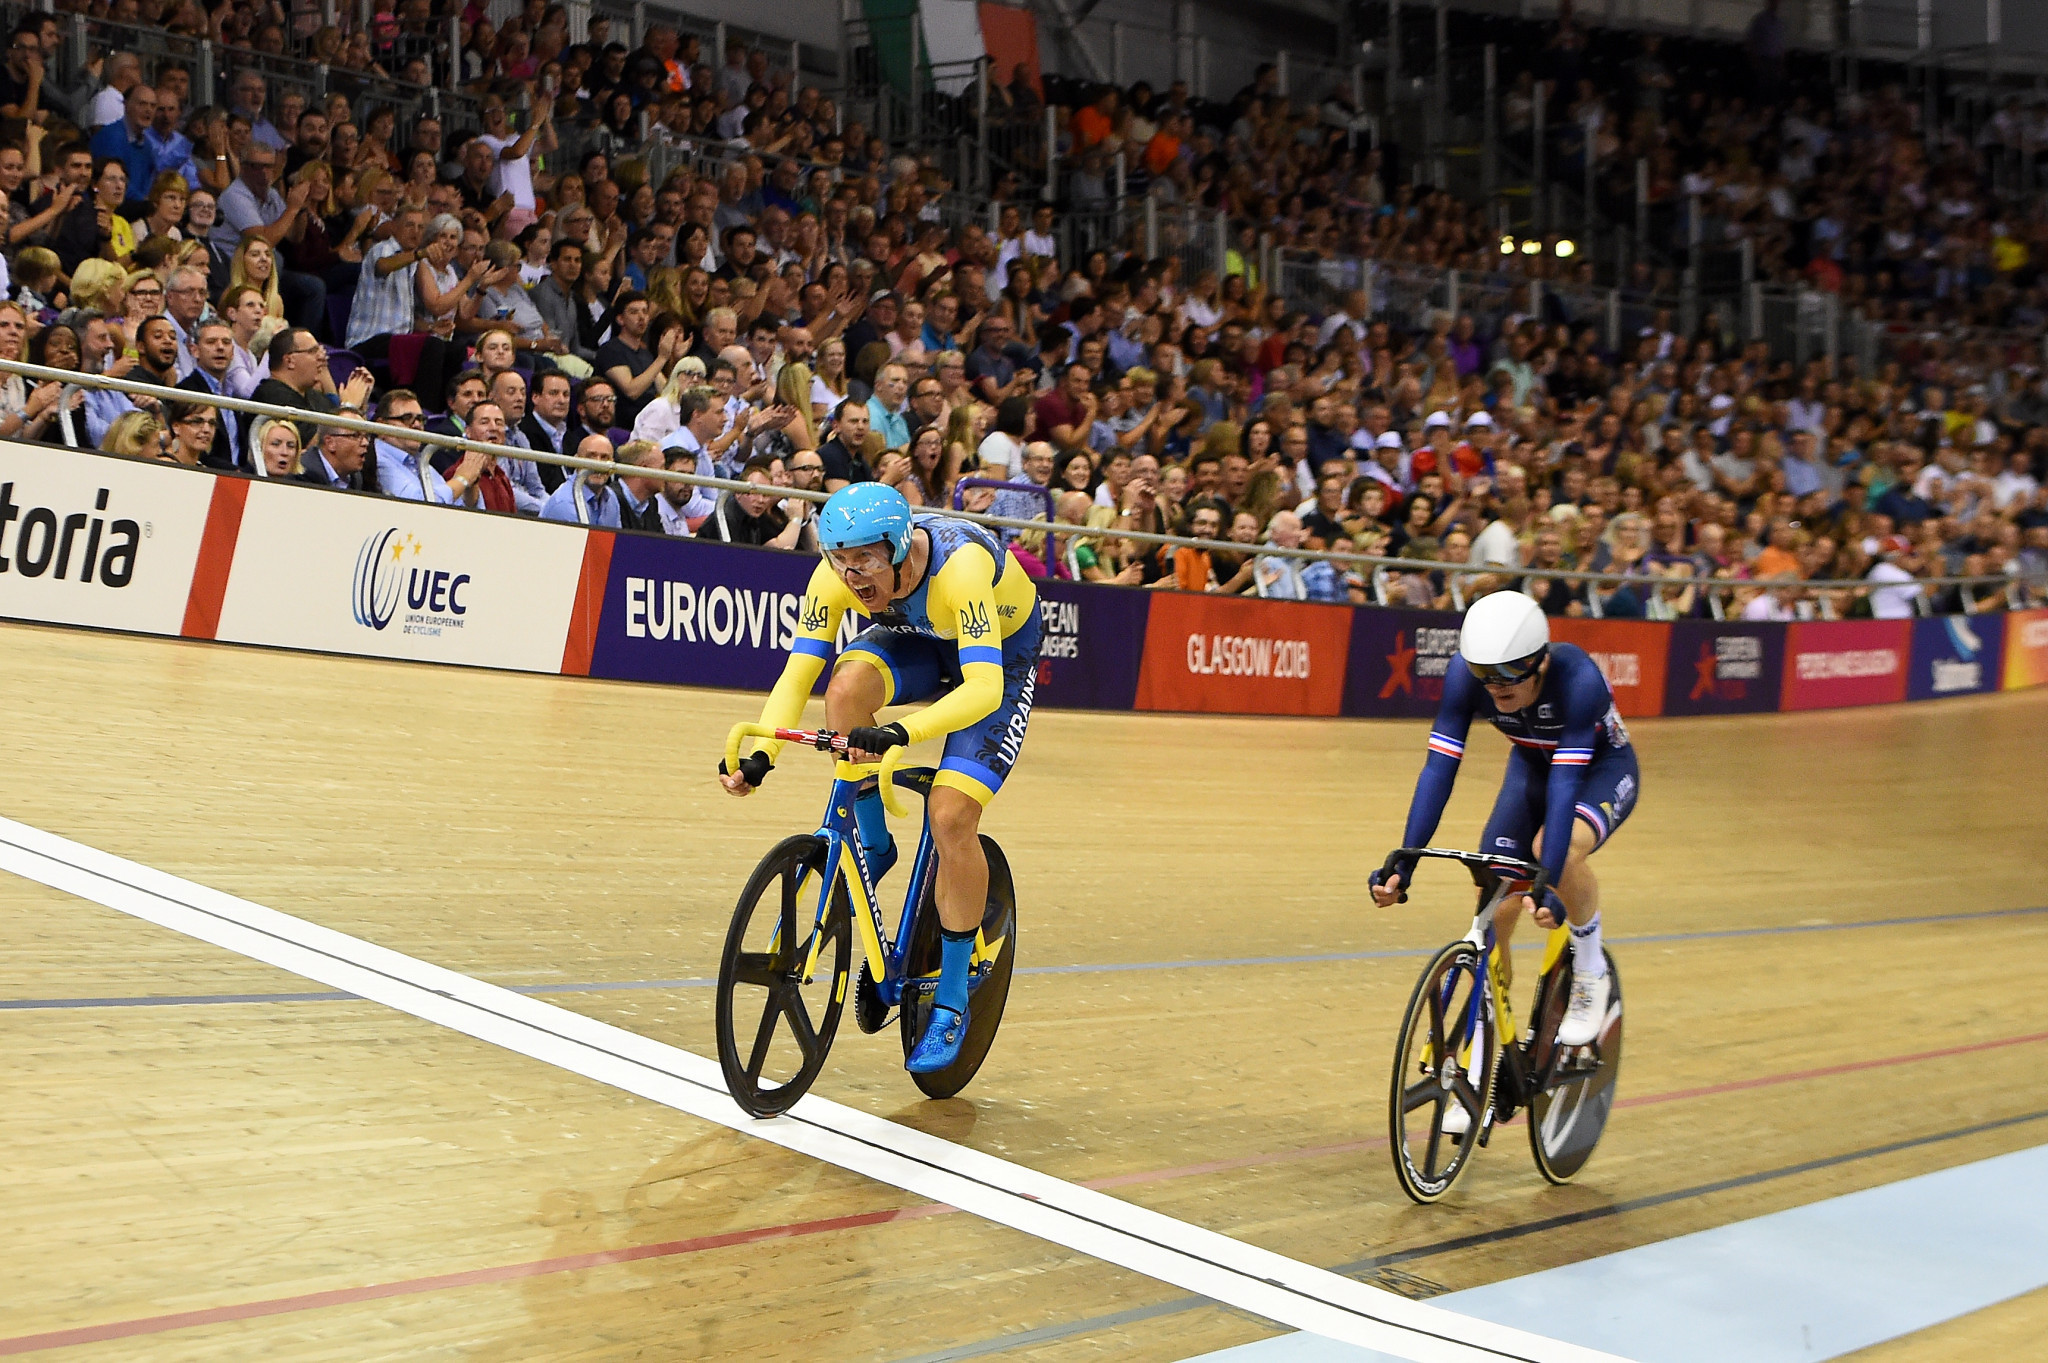 Medals in track cycling and swimming medals were also decided on day two ©Getty Images